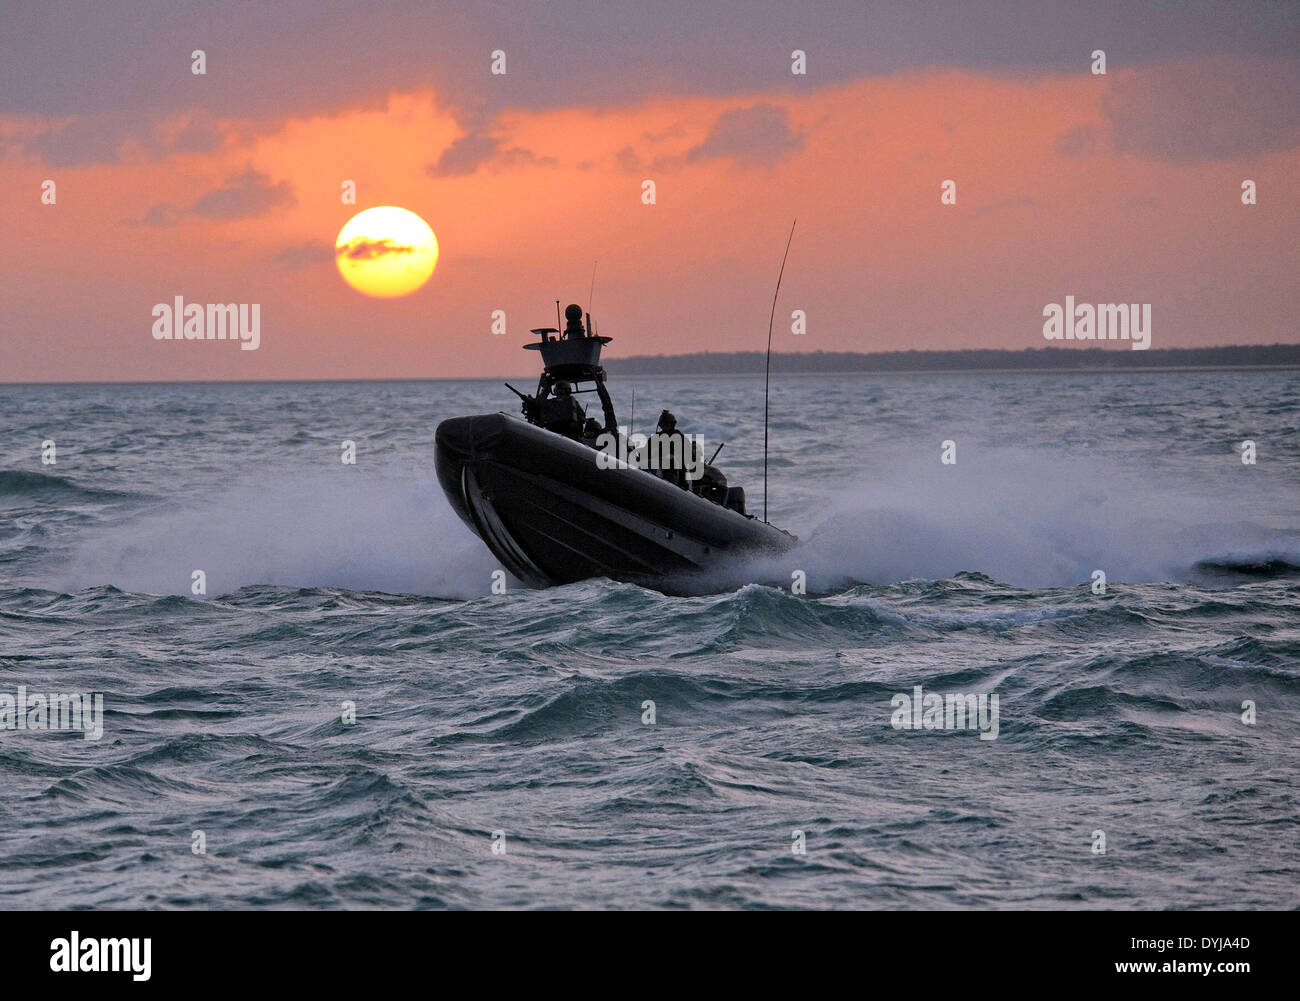 US Navy SEAL Special Warfare Combatant craft Crewmen assigned to Special Boat Team 20 navigates a rigid-hull inflatable boat film a scene in a movie production 'I Am That Man' July 9, 2008 in Key West, Florida. - Stock Image